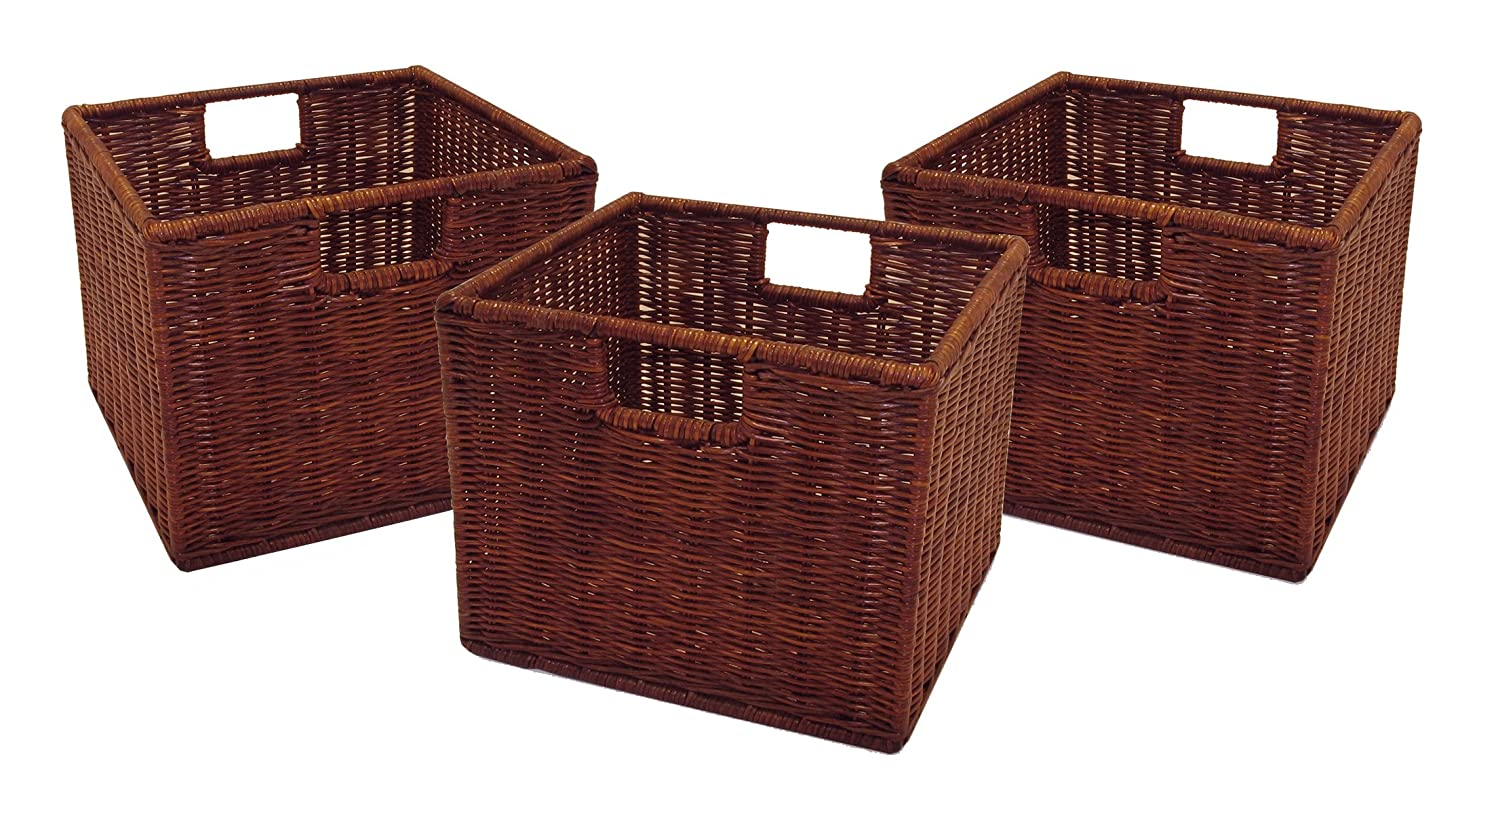 Amazon.com Winsome Wood Leo Set Of 3 Wired Baskets Small Home u0026 Kitchen  sc 1 st  Amazon.com & Amazon.com: Winsome Wood Leo Set Of 3 Wired Baskets Small: Home ...